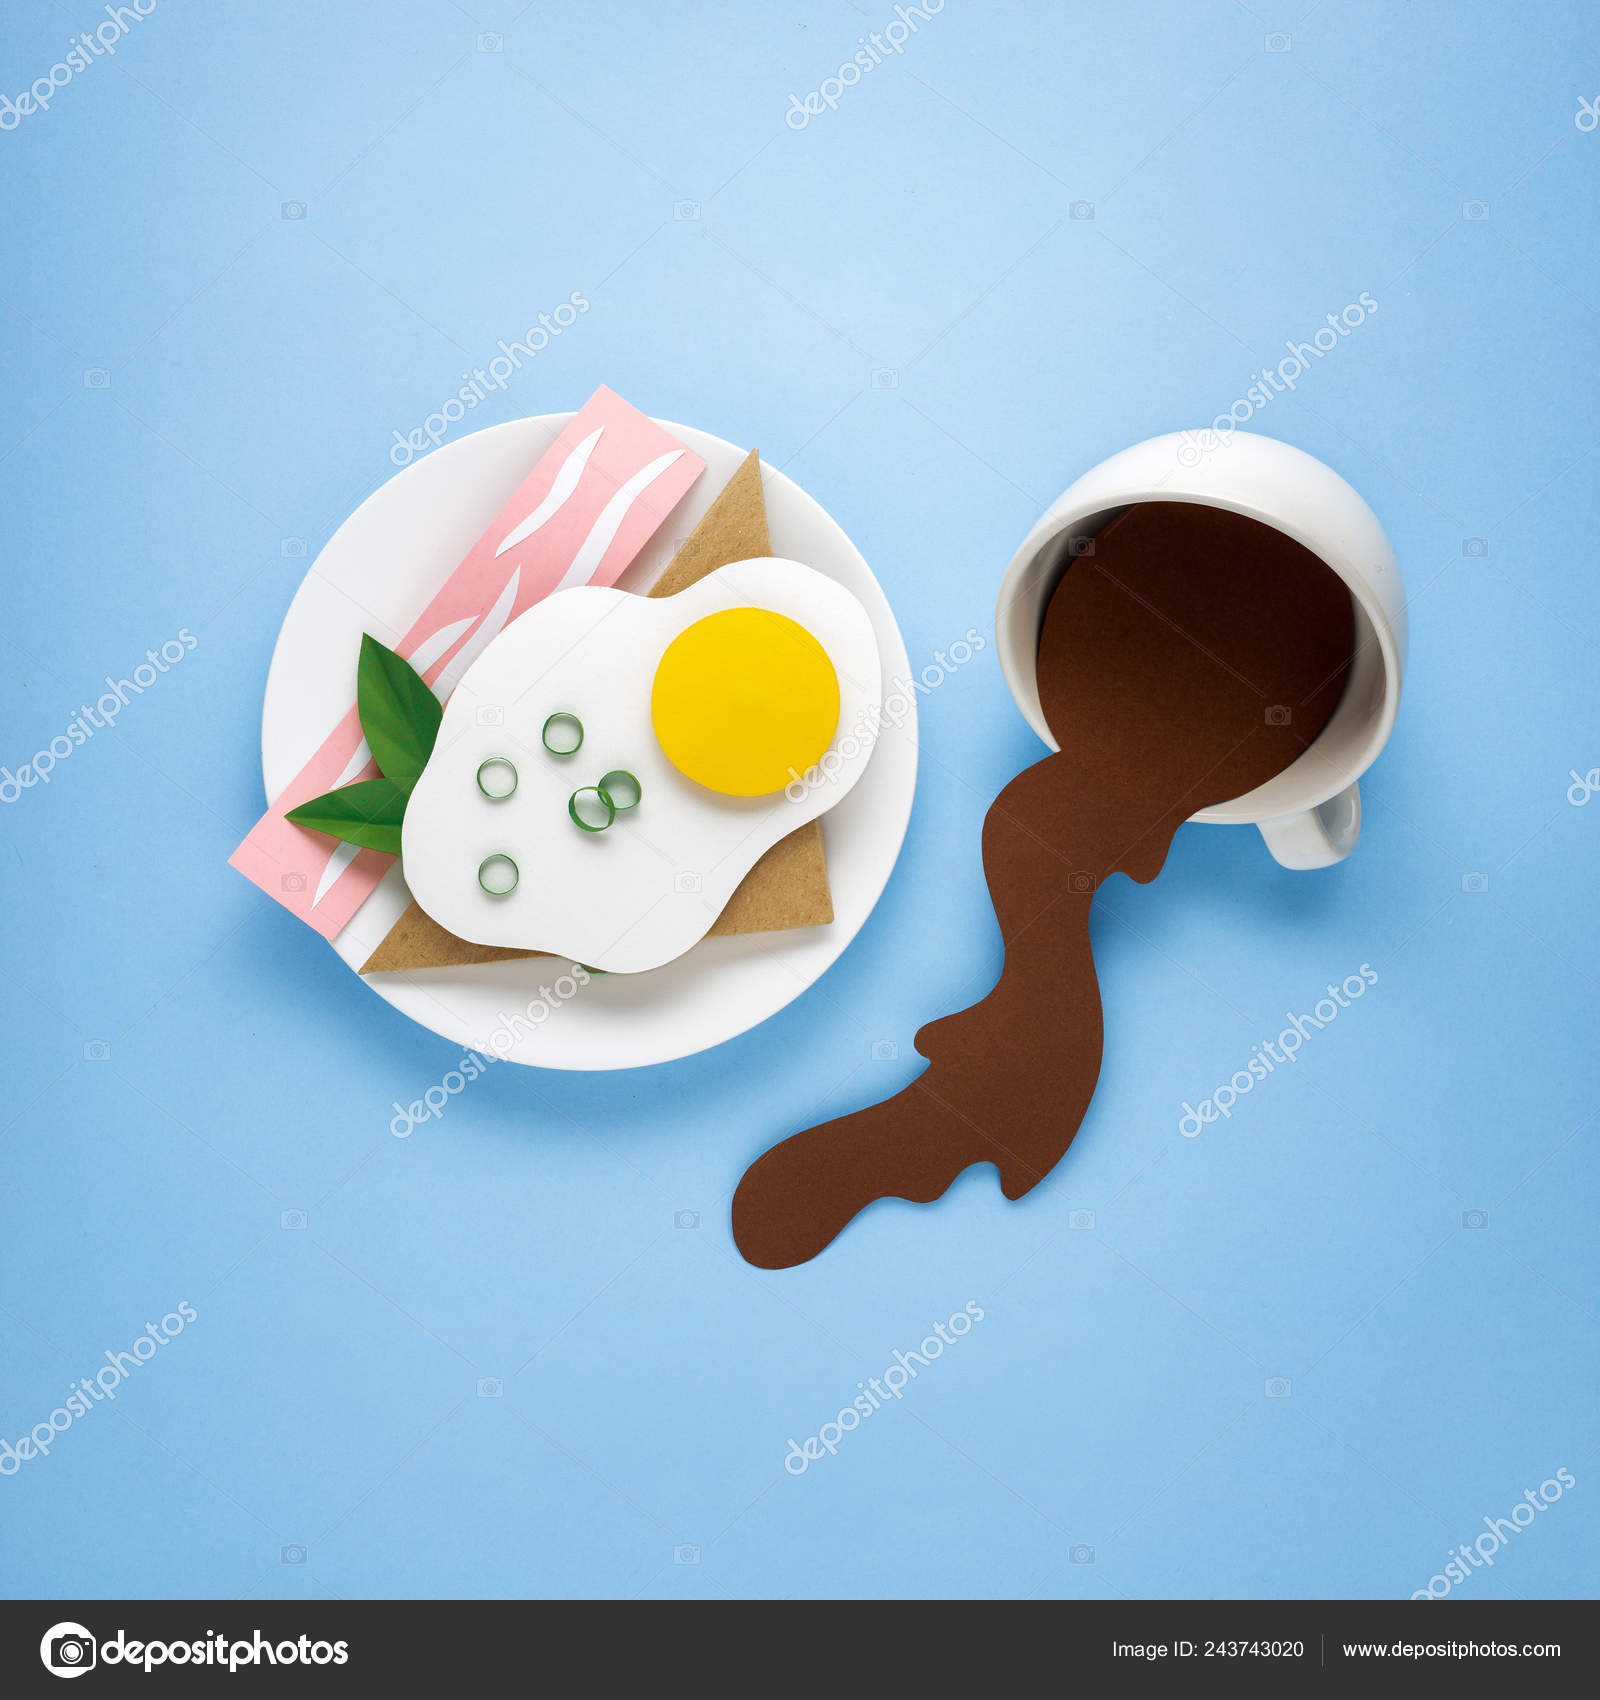 Creative Concept Photo Paper Breakfast Plate Coffee Blue Background Stock Photo C Fisher Photostudio 243743020